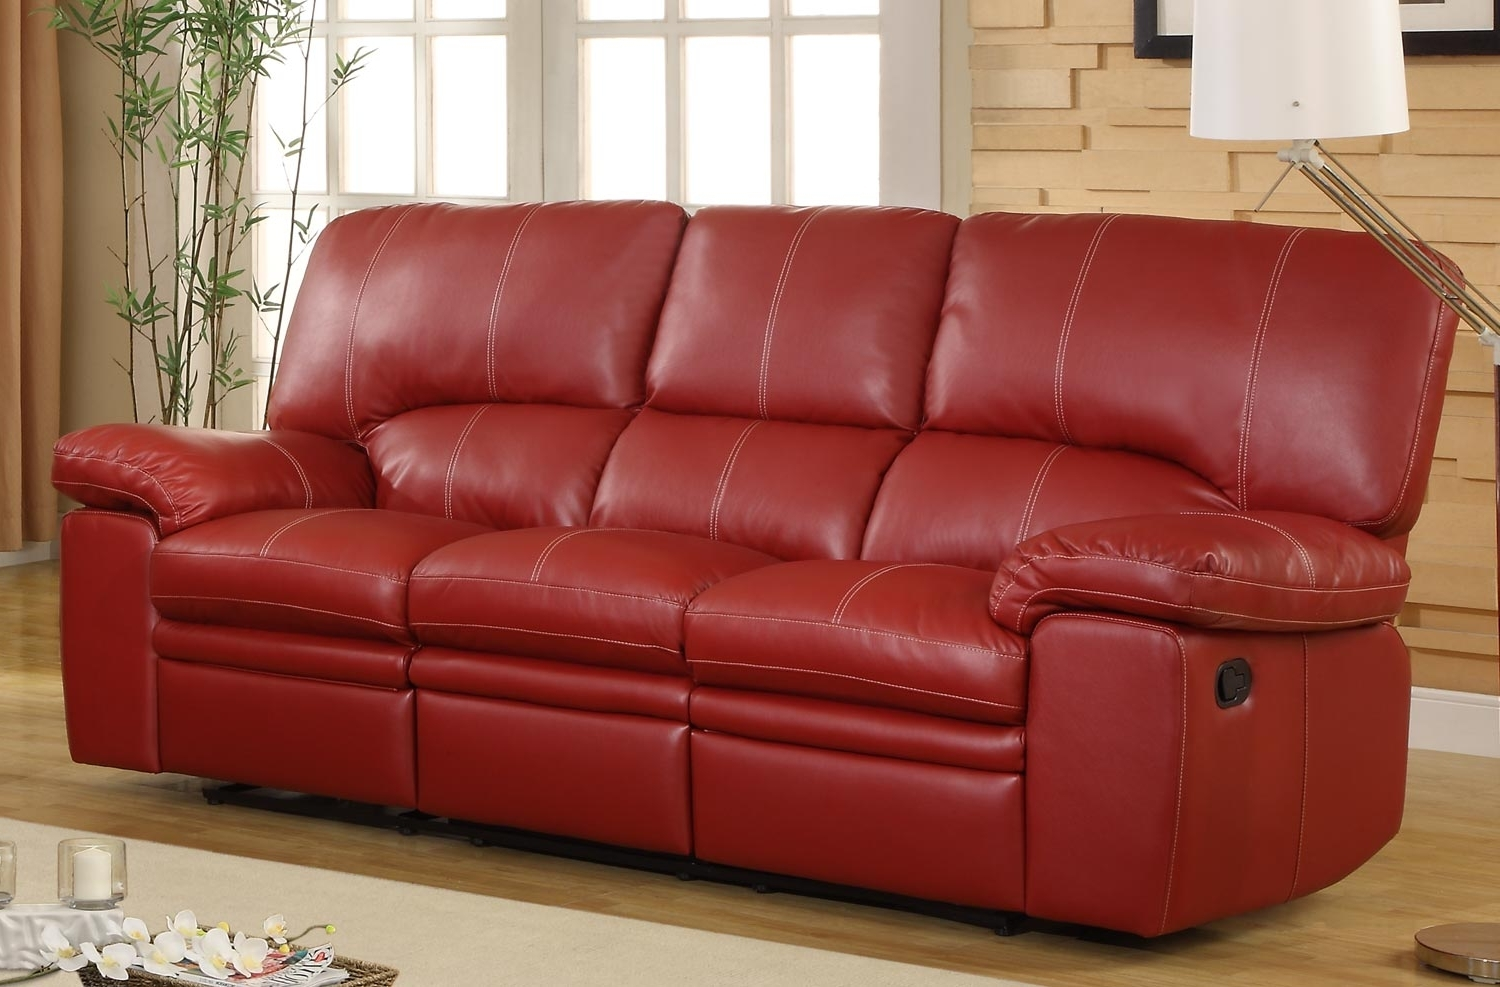 Most Recently Released Red Leather Sectional Sofas With Recliners Regarding Homelegance Kendrick Double Recliner Sofa – Red – Bonded Leather (View 4 of 15)